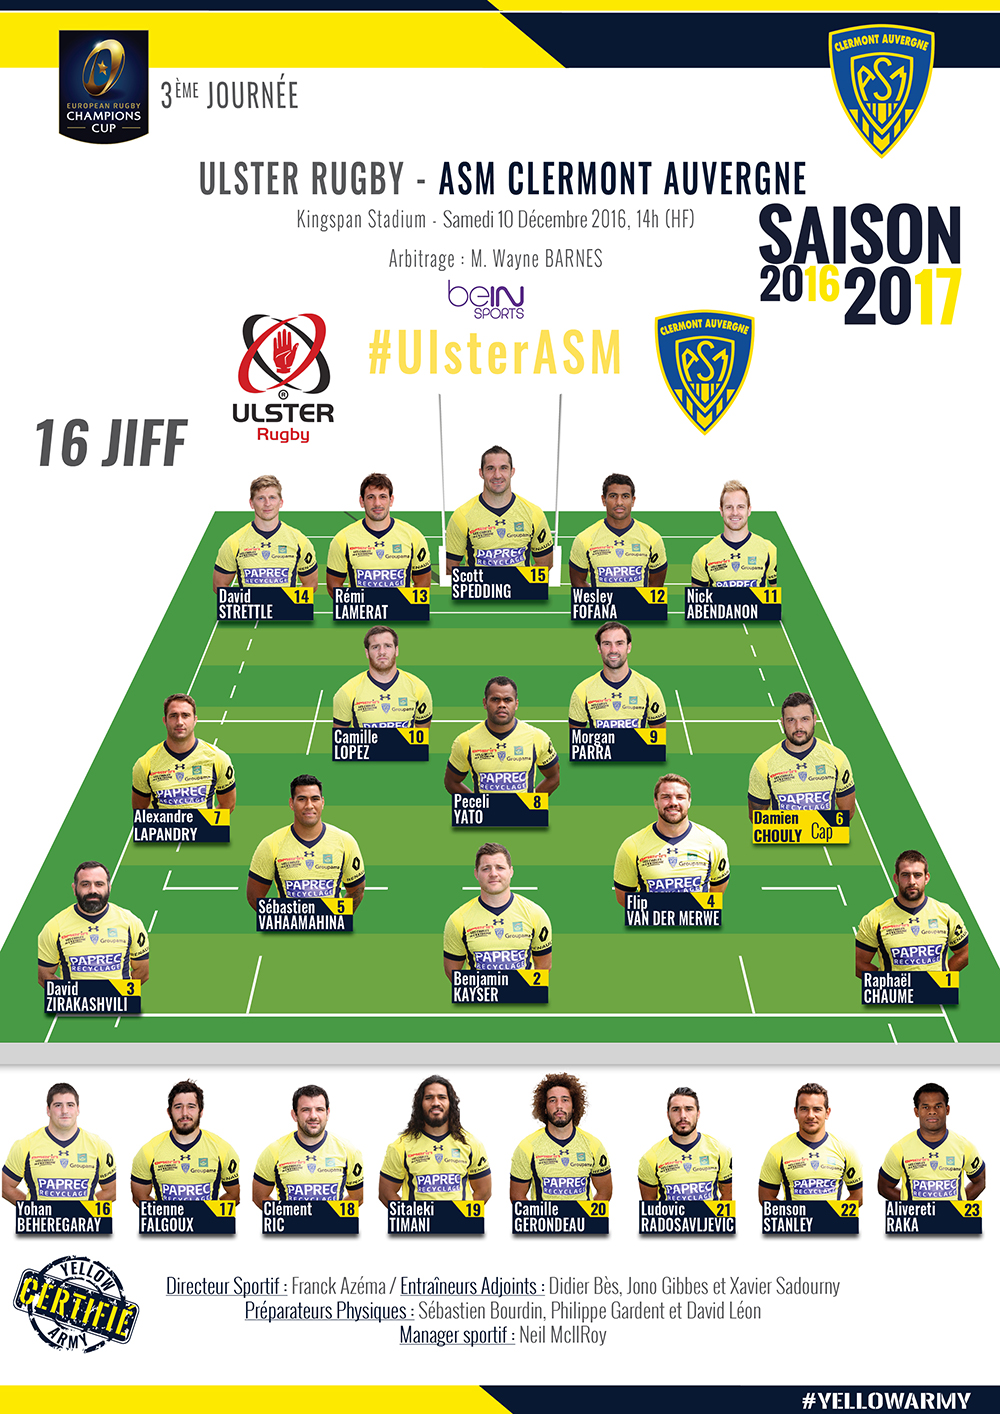 http://www.asm-rugby.com/sites/default/files/thumbnails/image/161209-compo-2_0.jpg